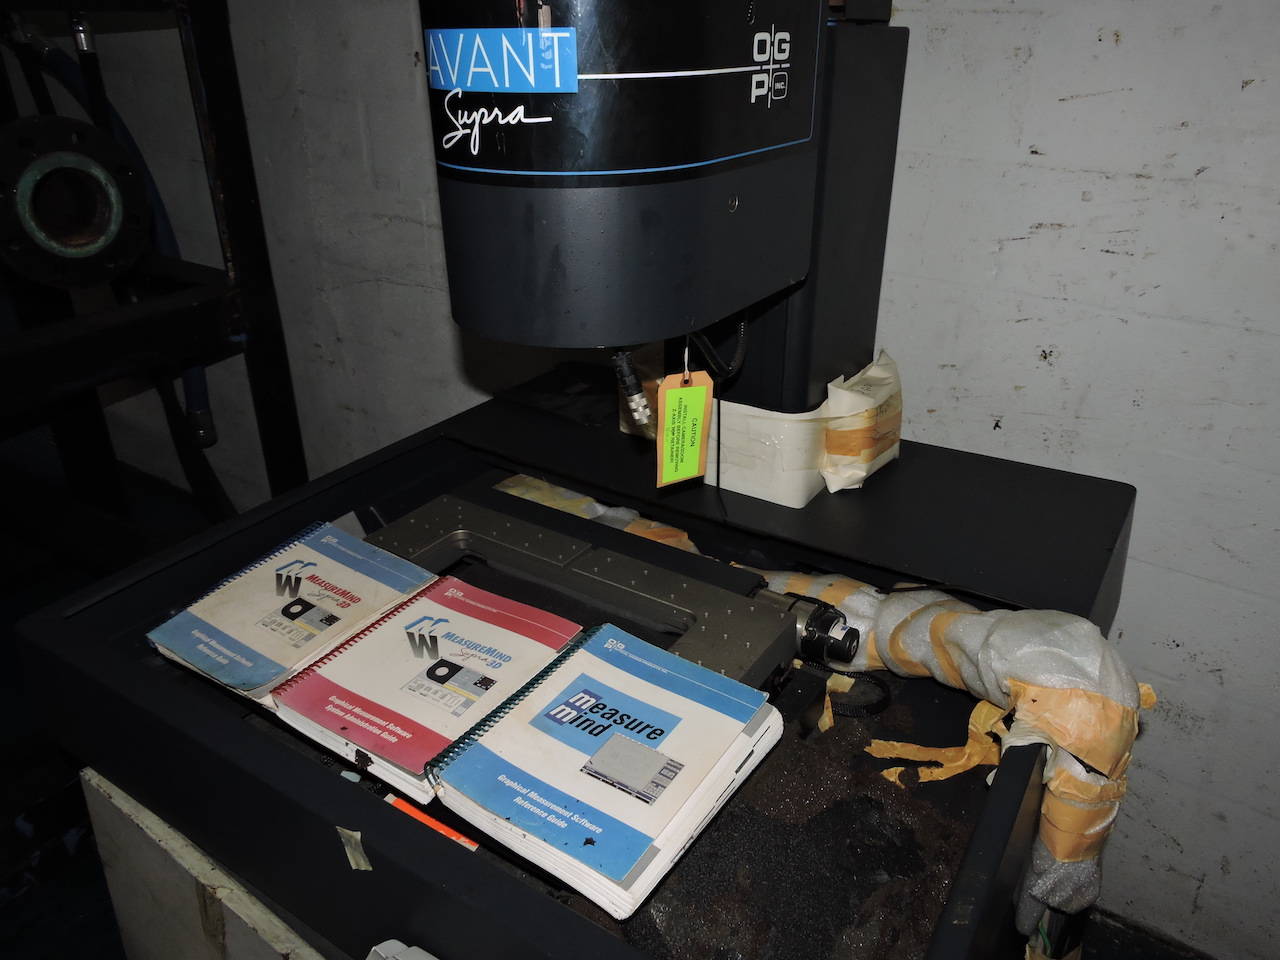 Lot 18 - AVANT SUPRA 250 OPTICAL GAUGING SYSTEM, WITH MANUALS